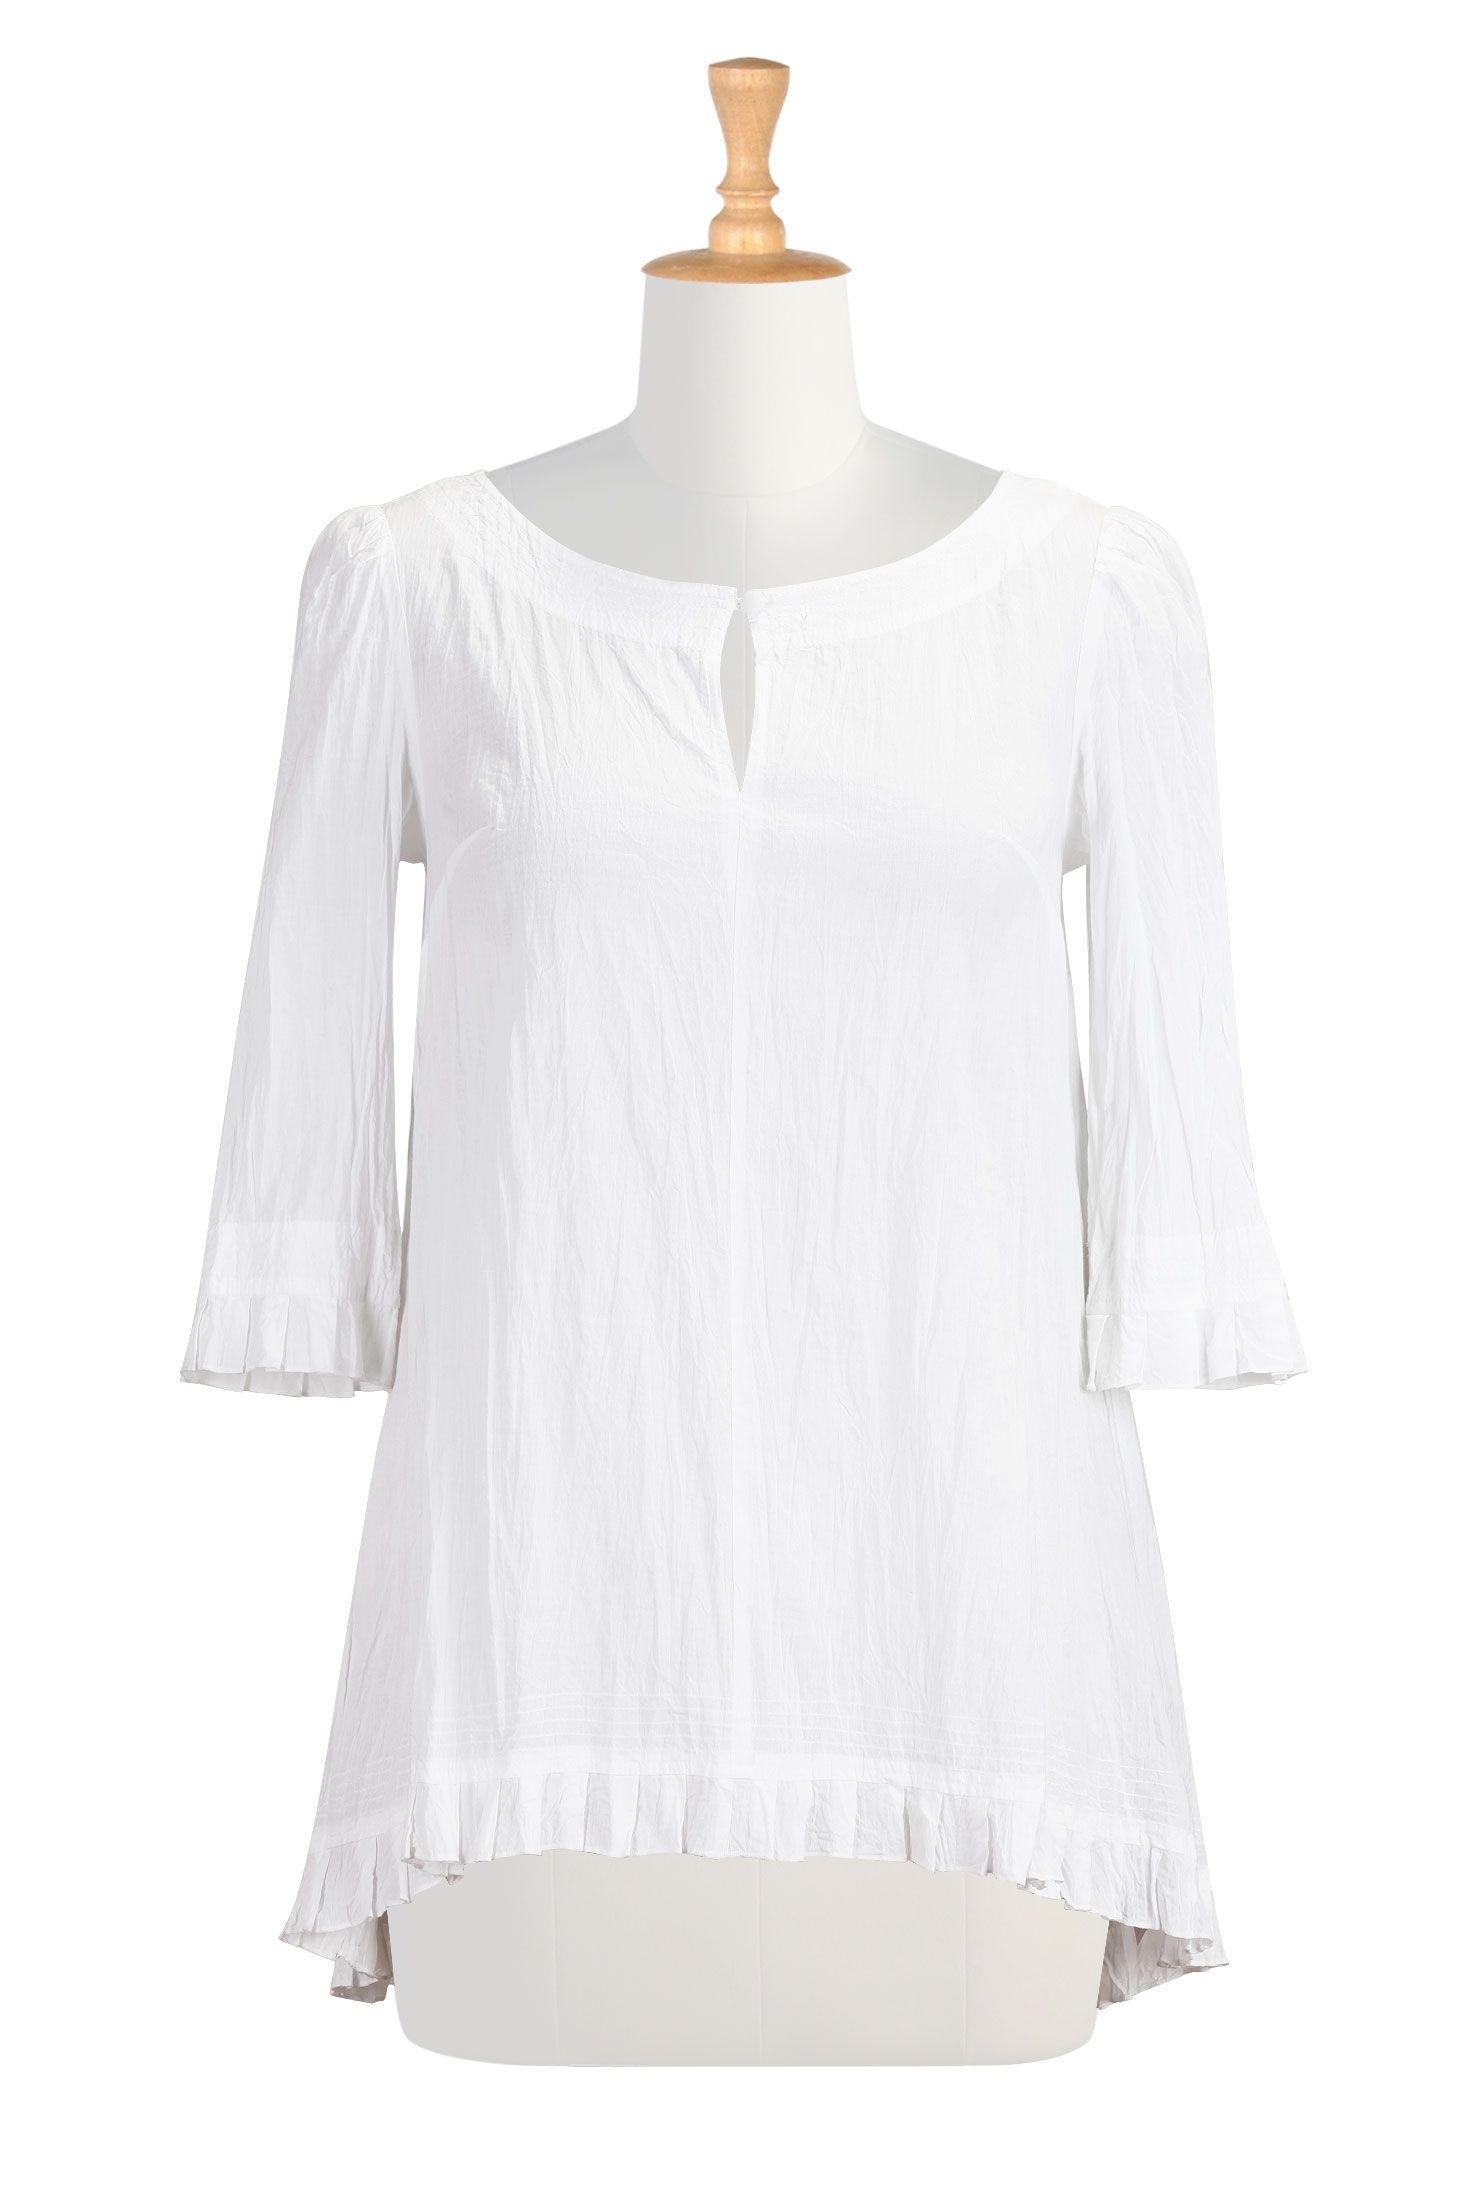 01d5059a4239b White Cotton Crinkle Tops